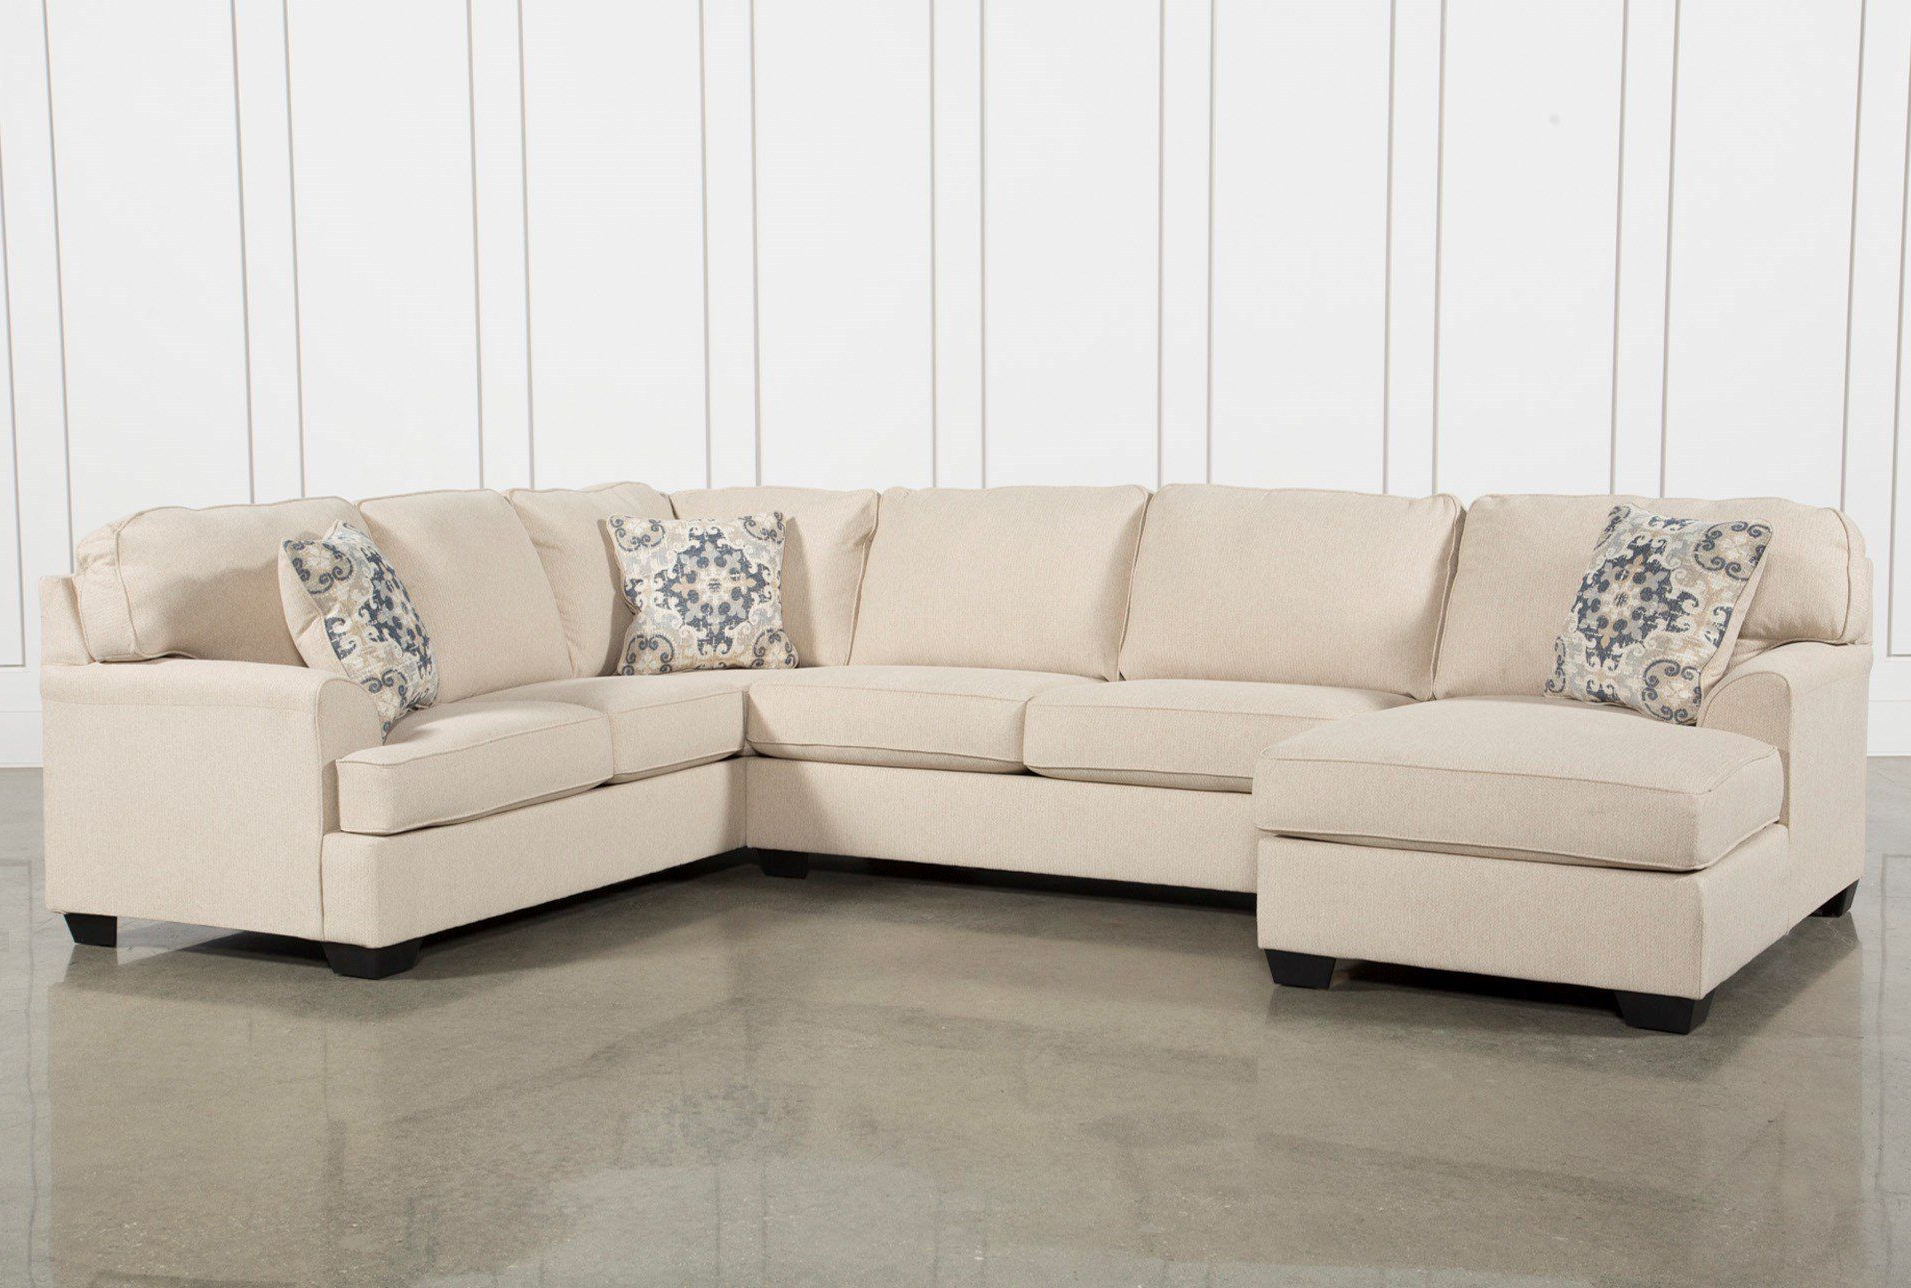 Sofas, Couches Regarding Alder 4 Piece Sectionals (View 17 of 20)